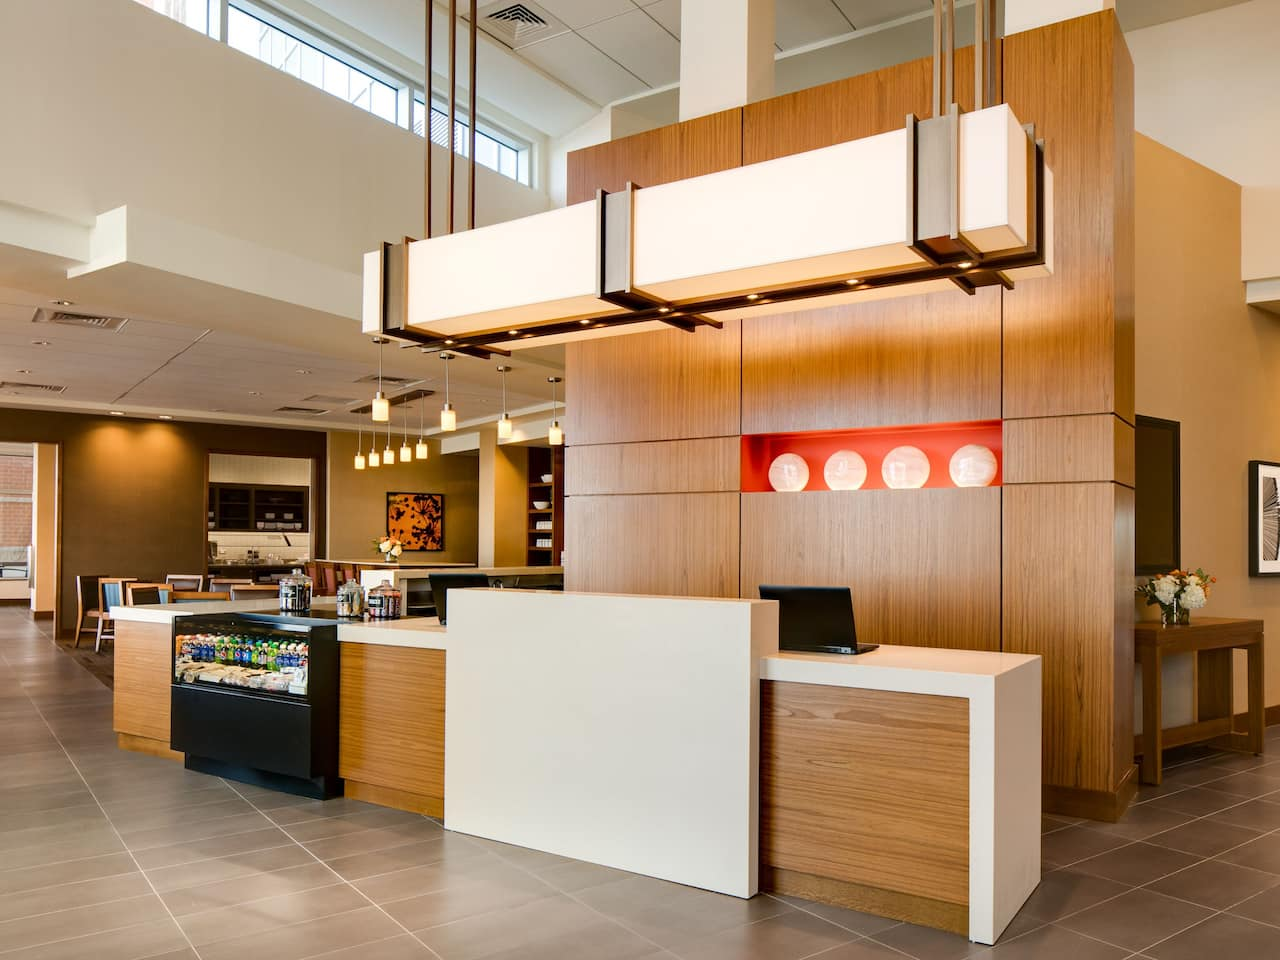 Hyatt Place Kansas City/Lenexa City Center Gallery Photo